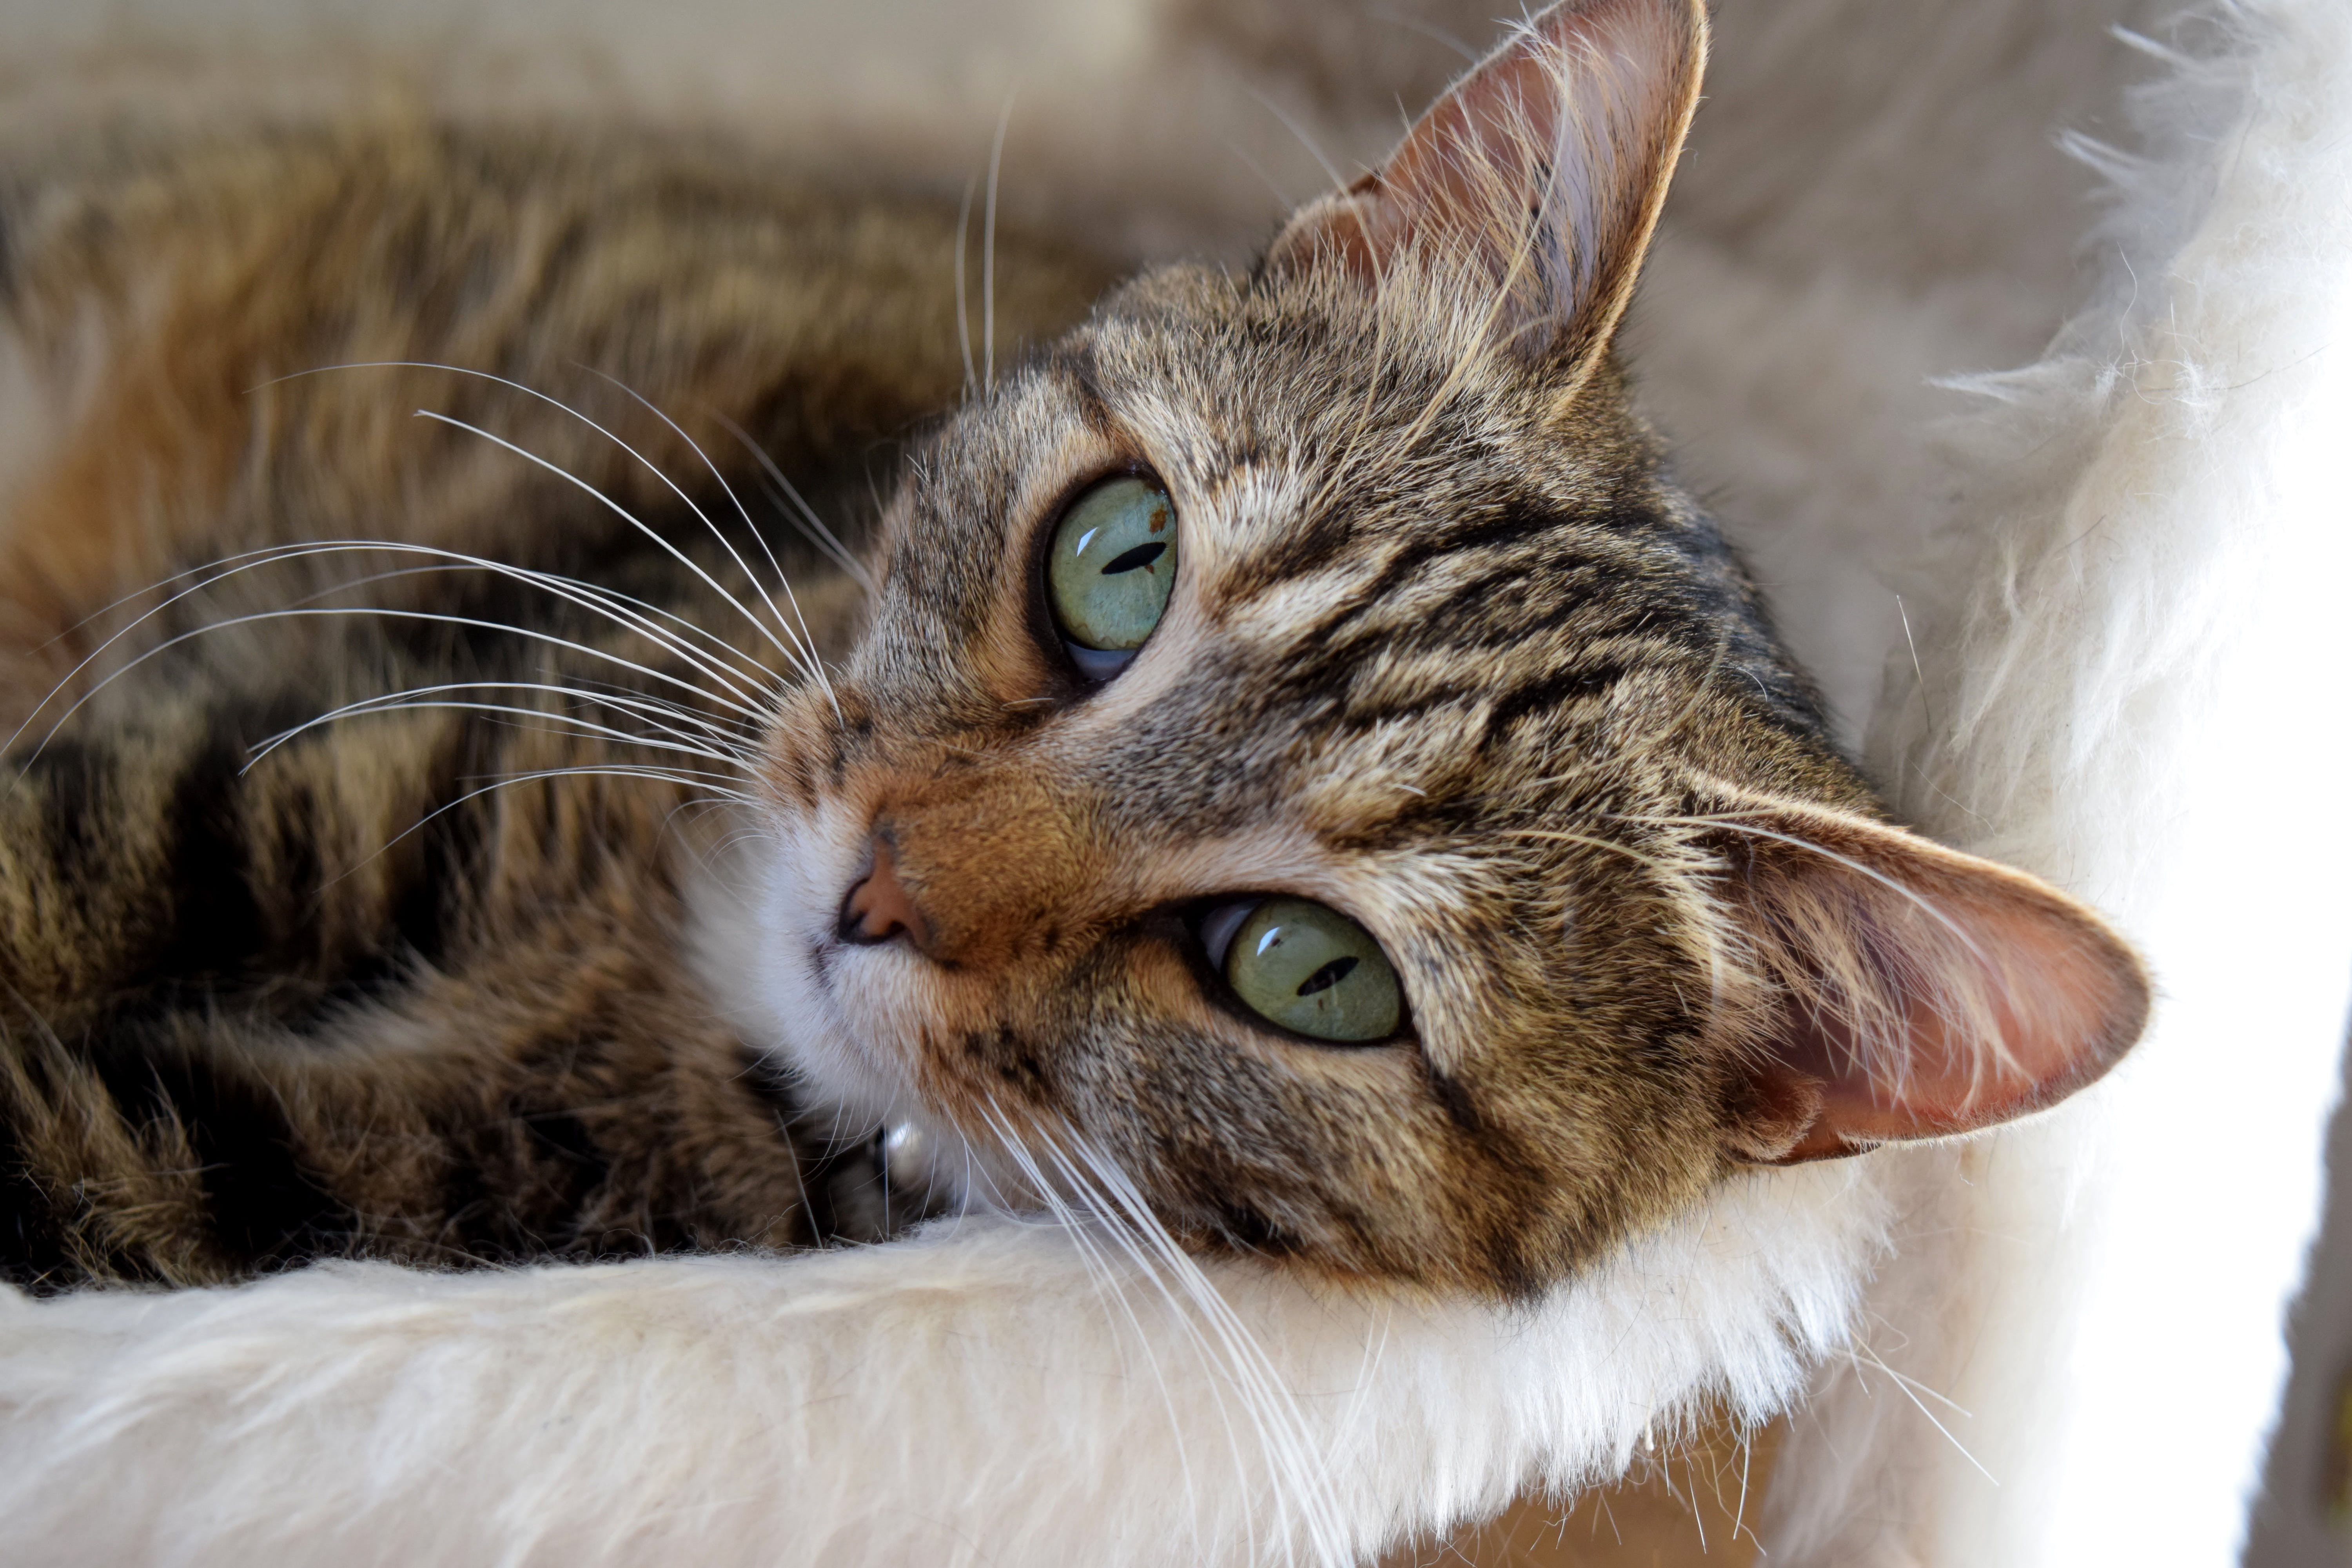 Brown Tabby Cat Lying Down on Bed